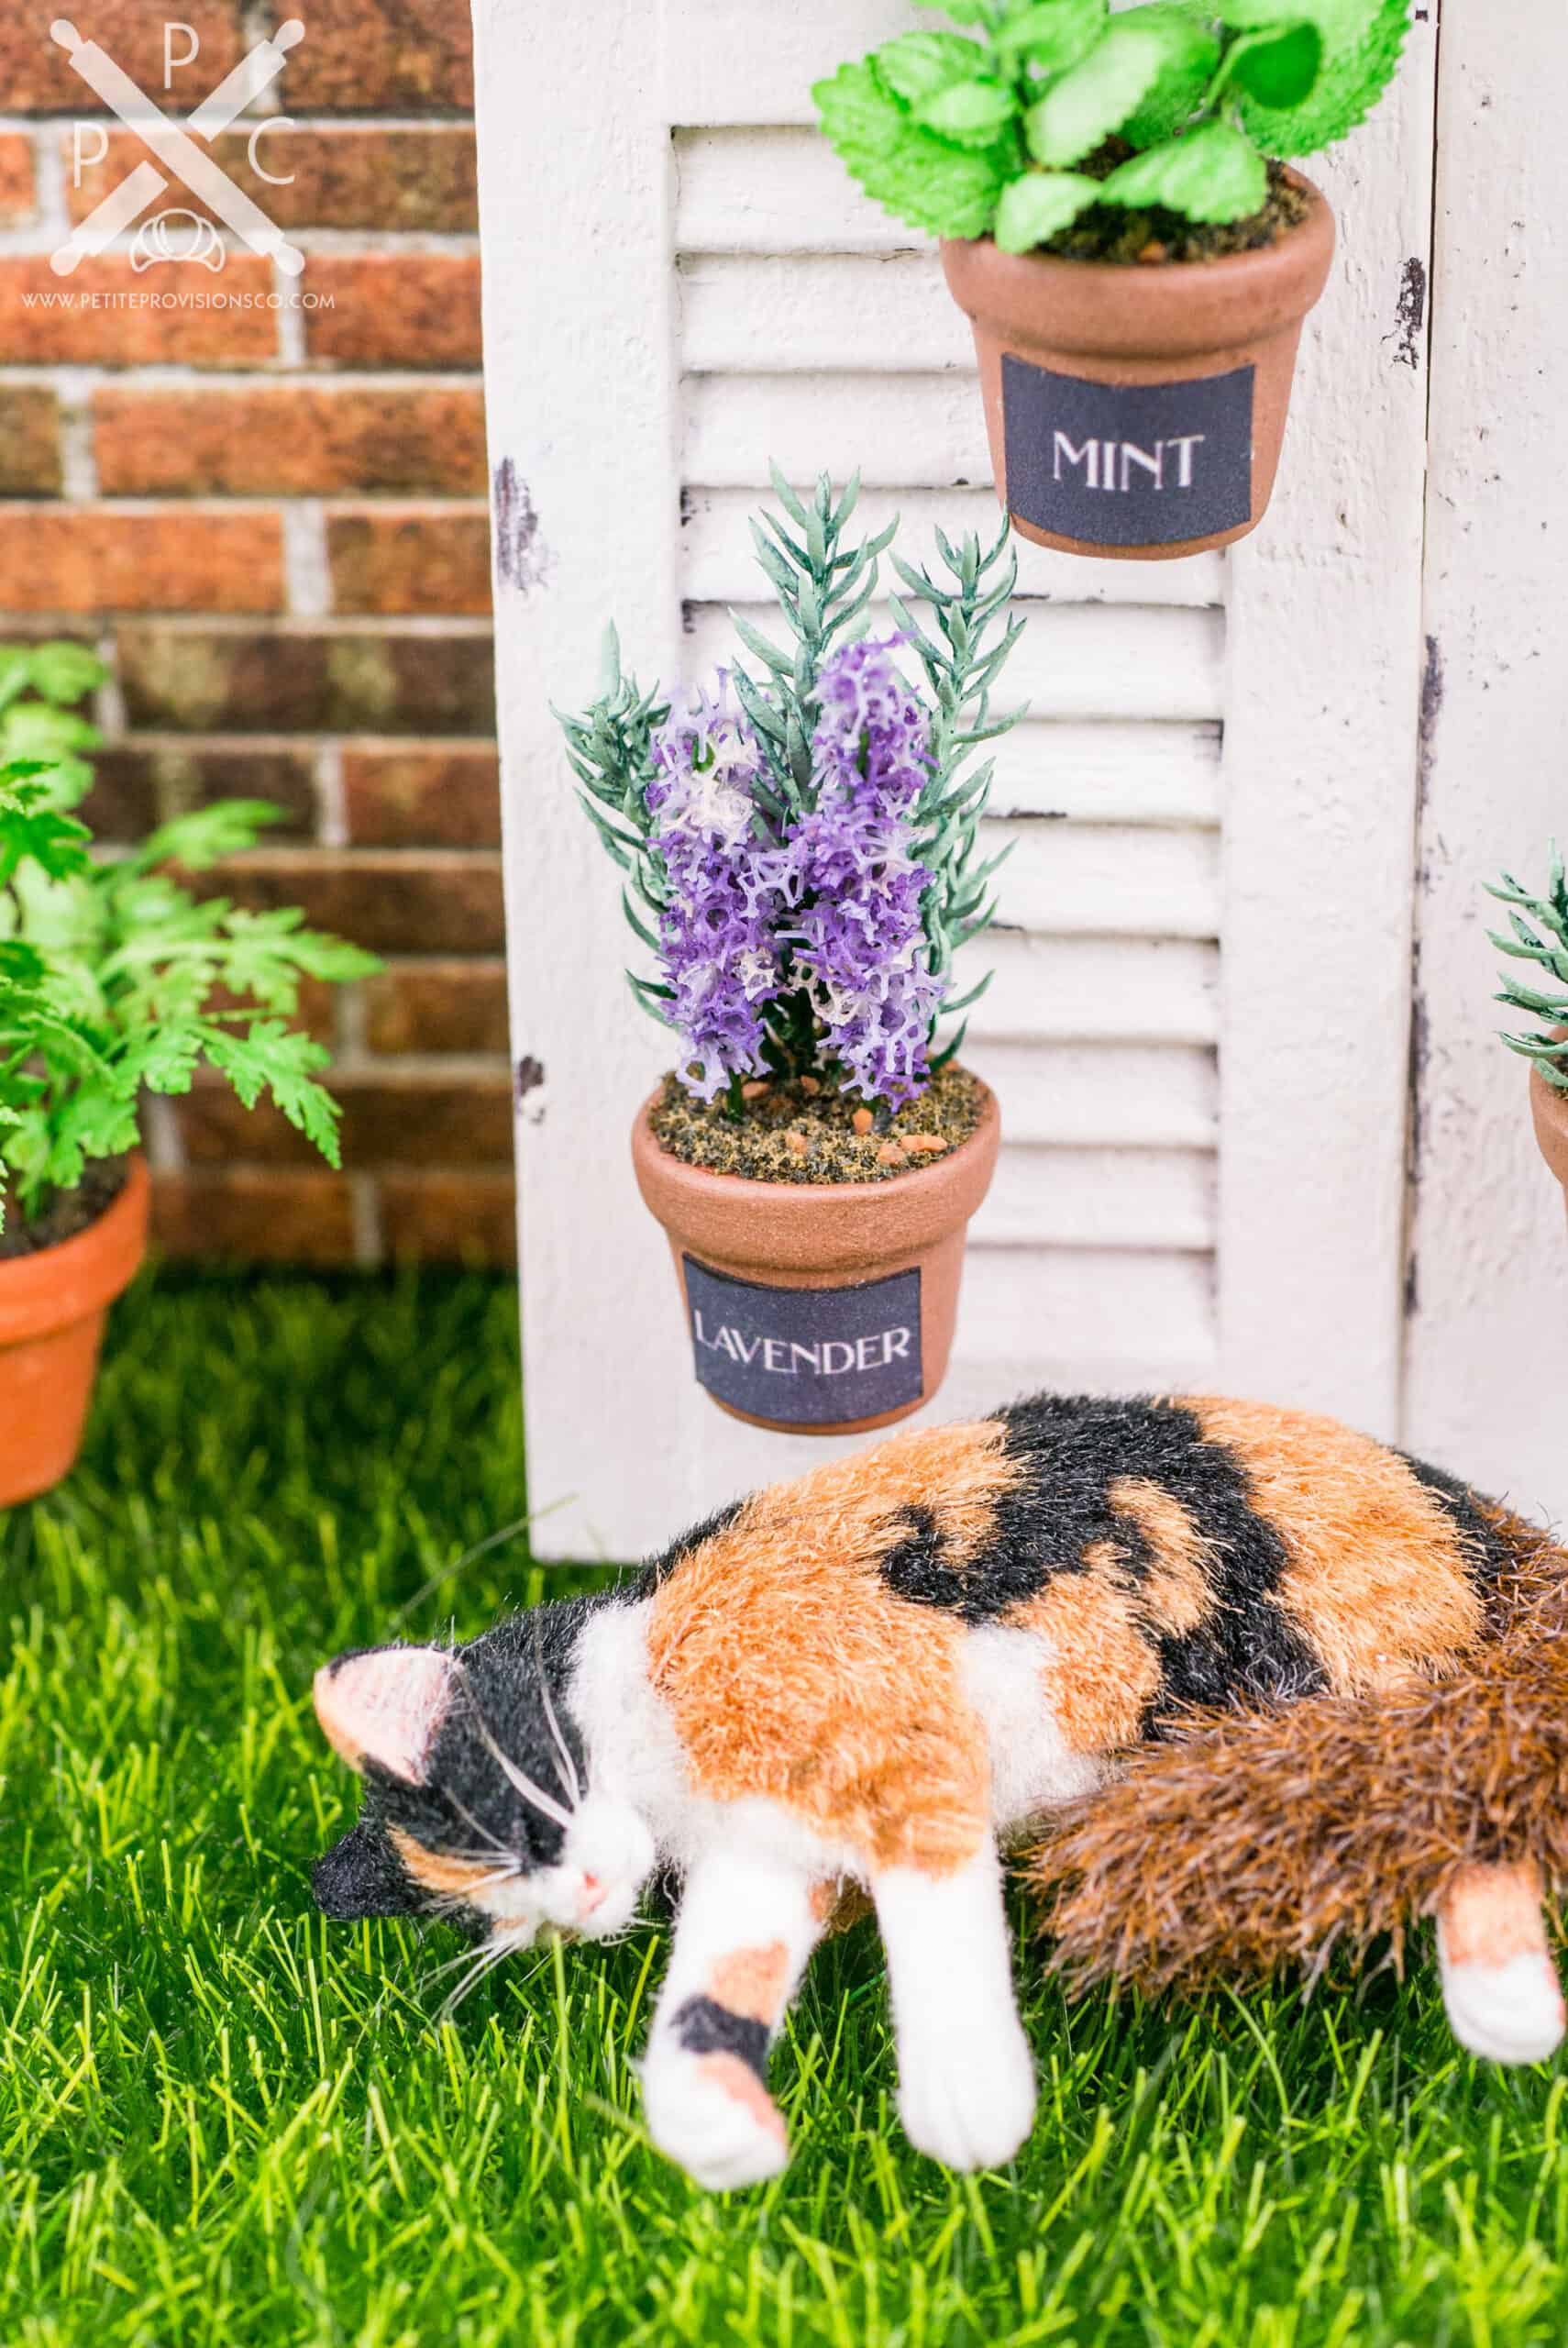 One inch scale potted lavender plant with calico cat napping